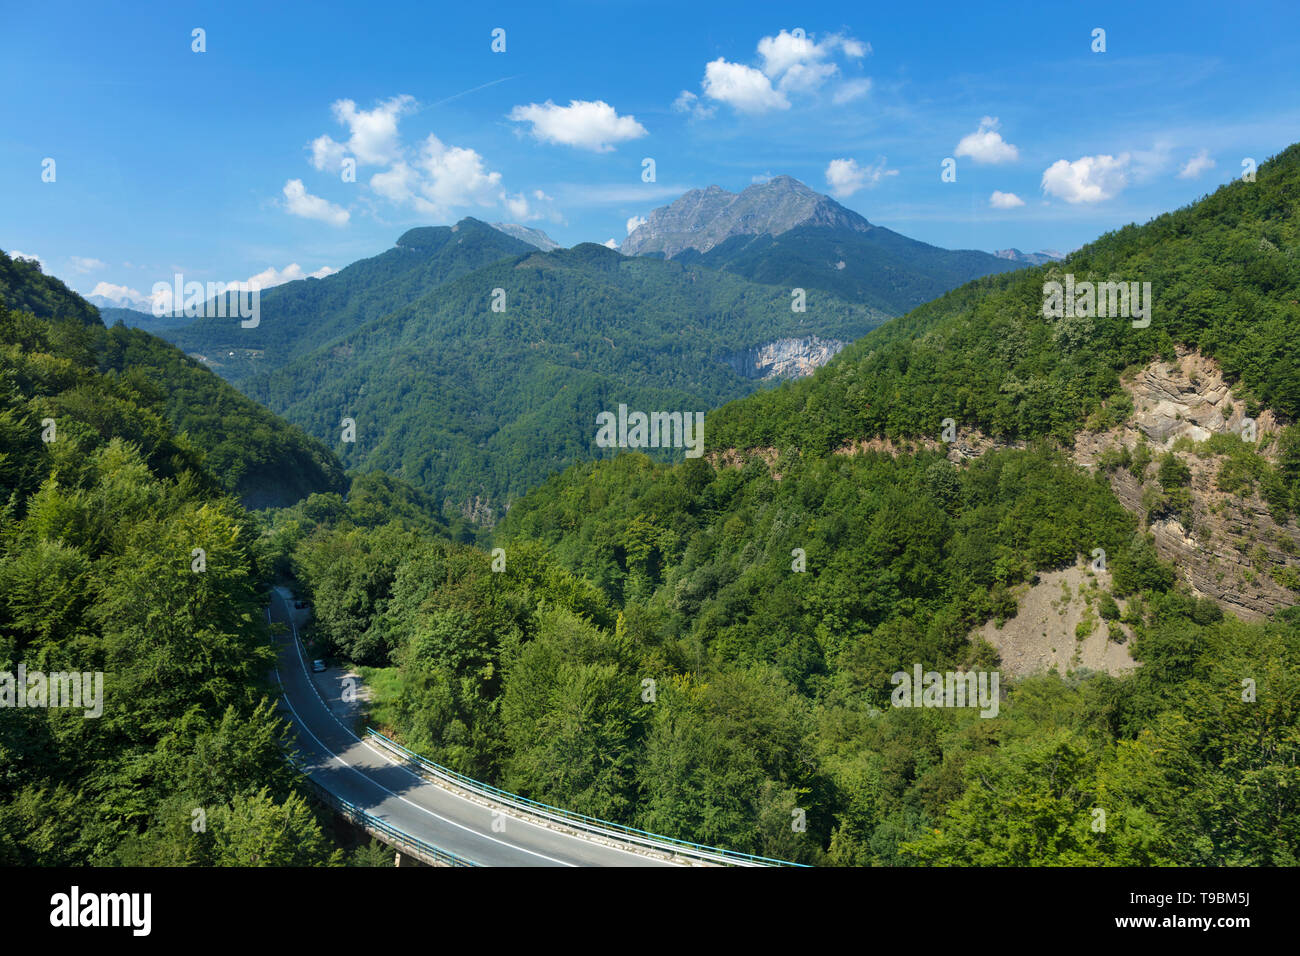 Aerial view of the greenery of the mountain massifs of Montenegro and the road, serpentine winding among the mountains. Stock Photo